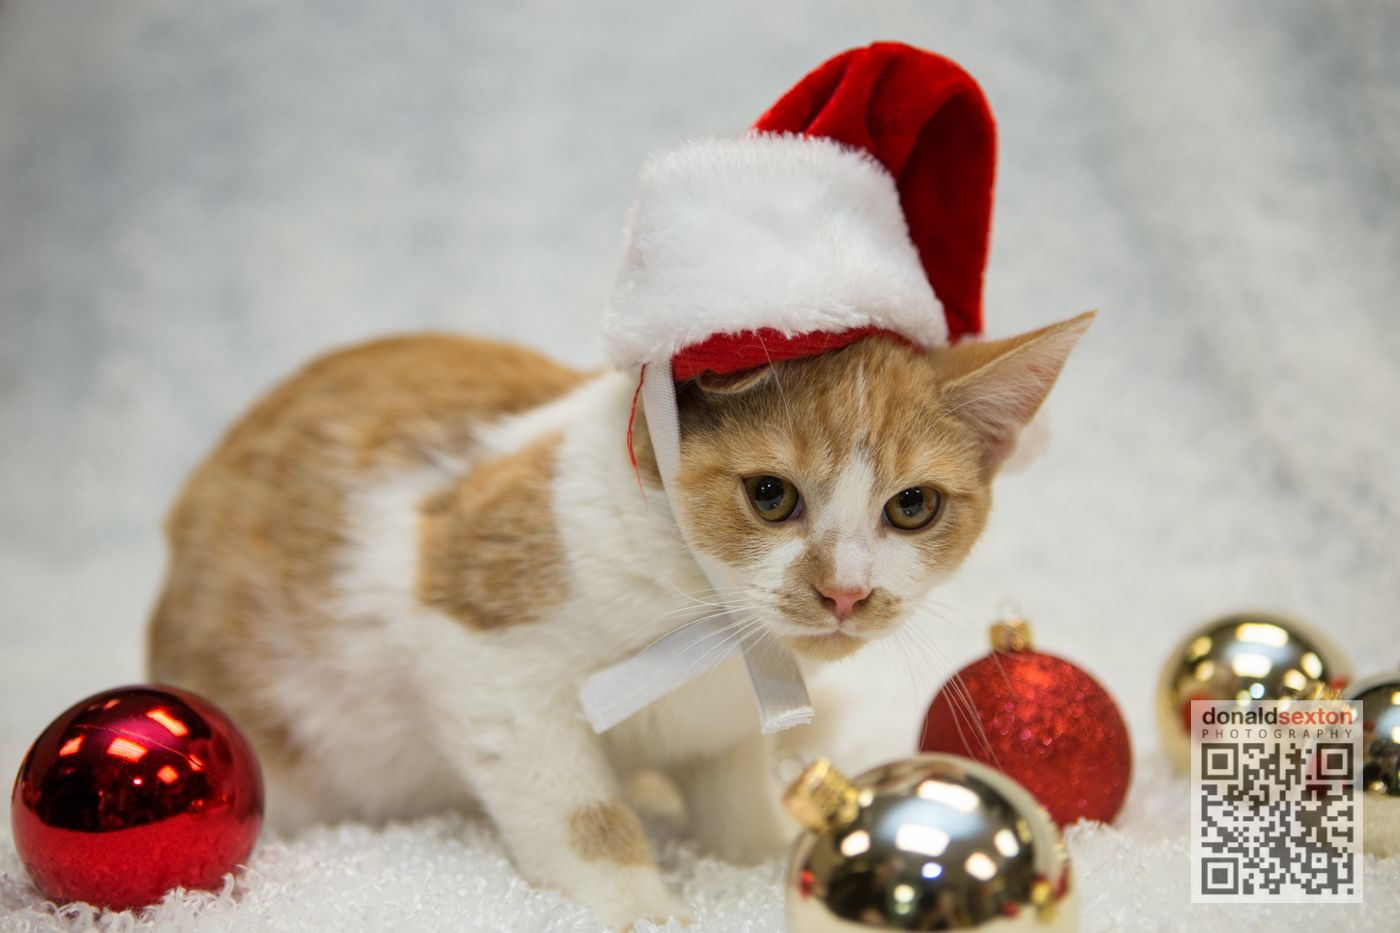 More Holiday Cheer at The Animal Protection League Inc